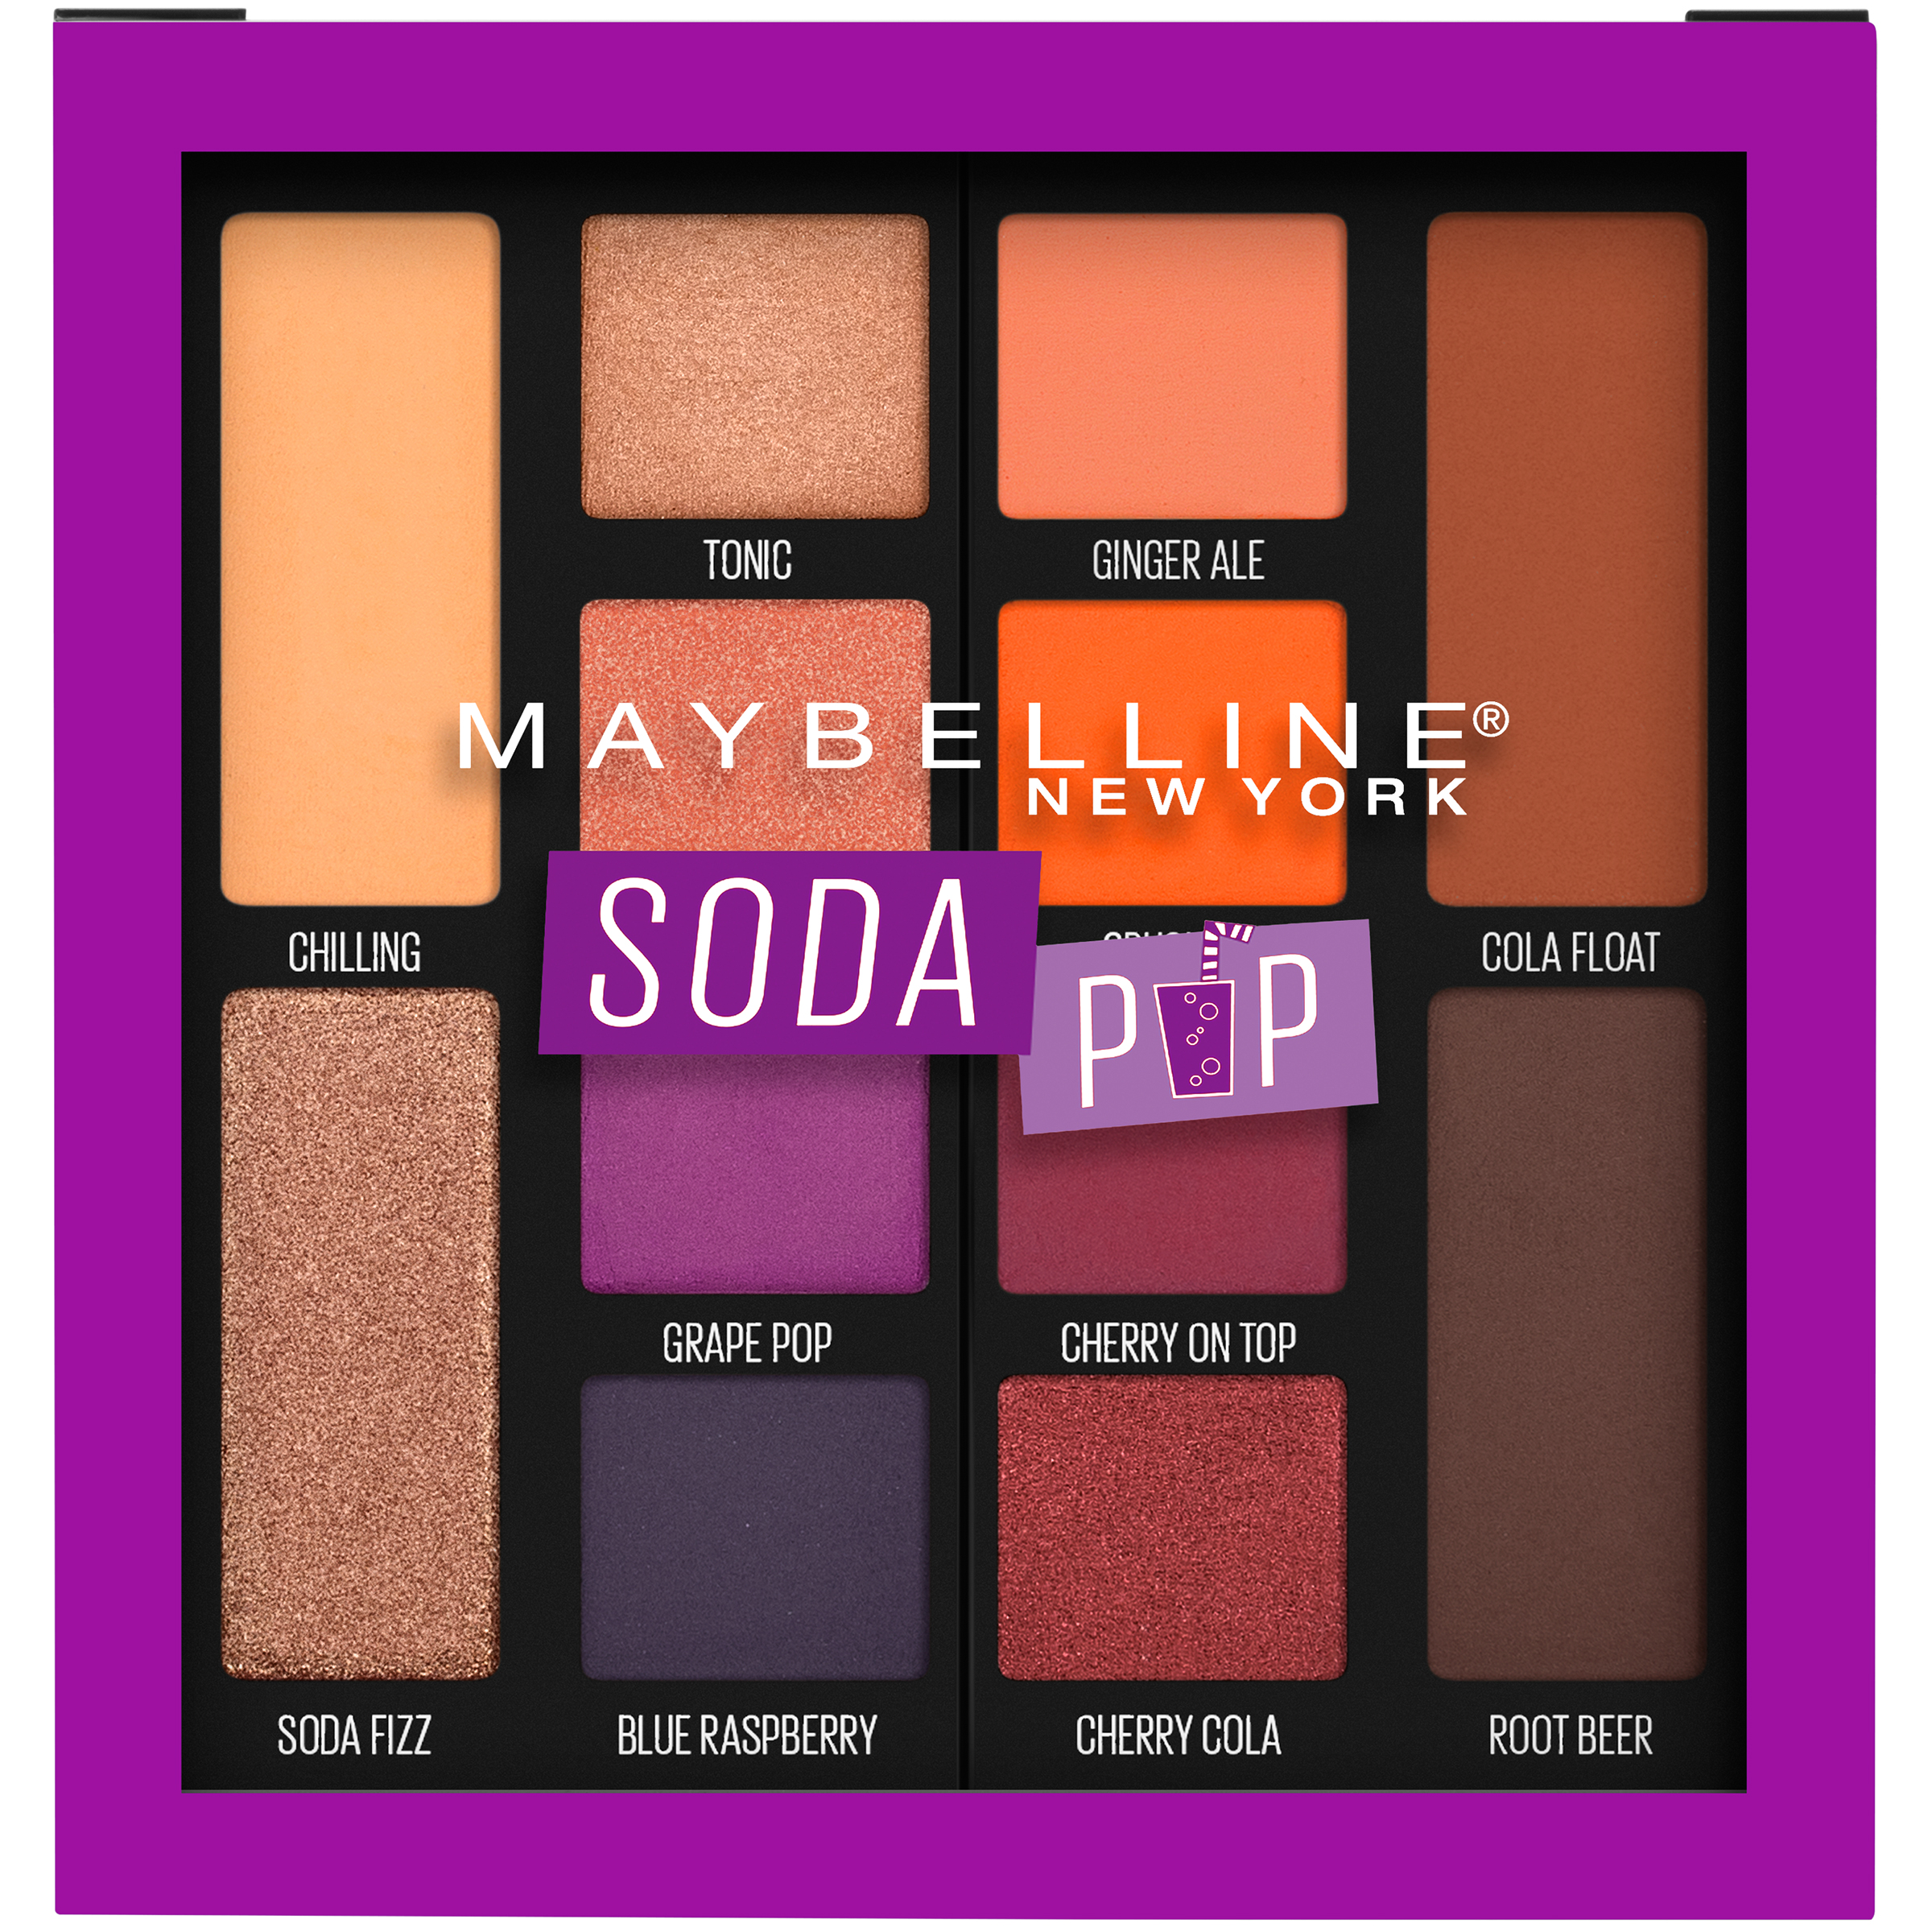 Maybelline Soda Pop Eyeshadow Palette Makeup, Soda Pop, 0.26 oz.